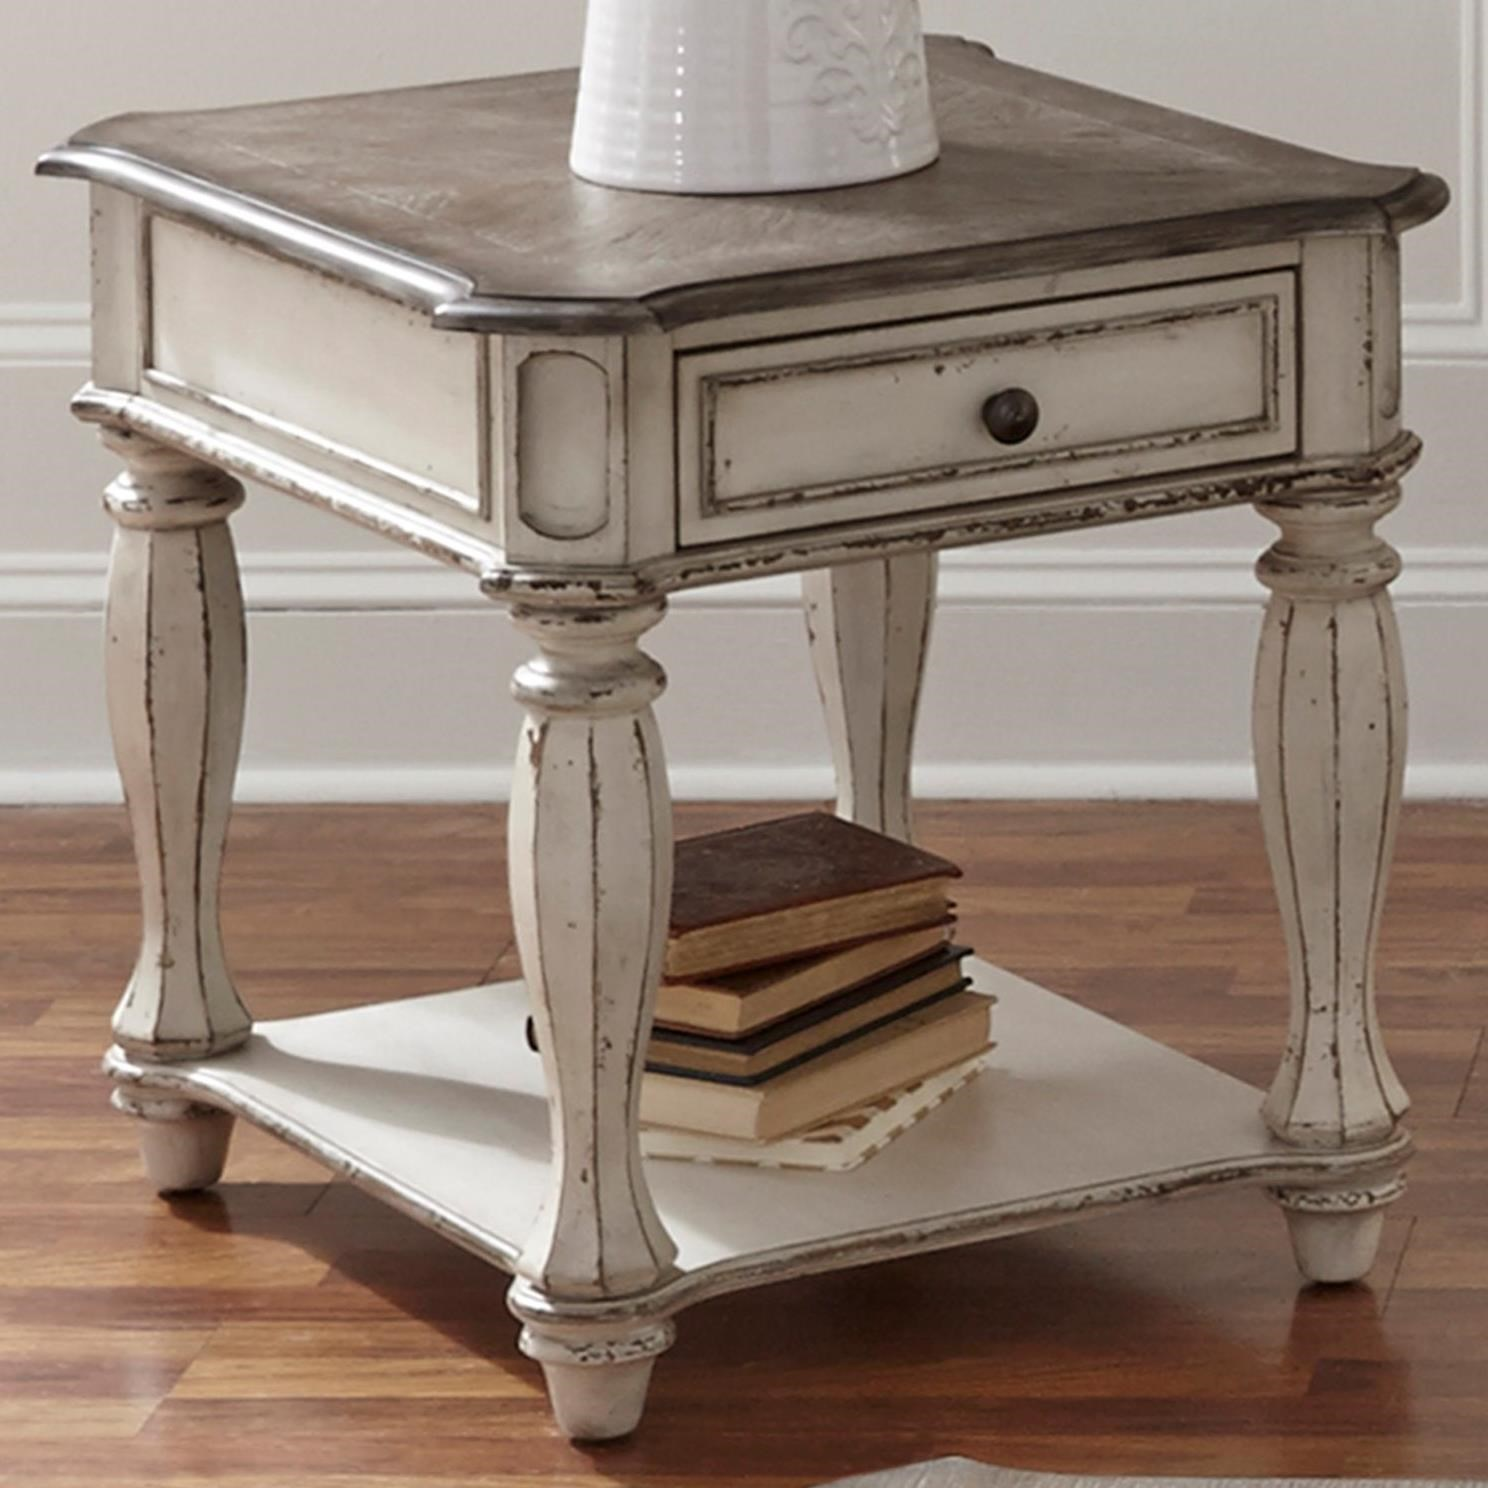 Home Decor Outlet Southaven Ms: Liberty Furniture Magnolia Manor 244-OT1020 End Table With